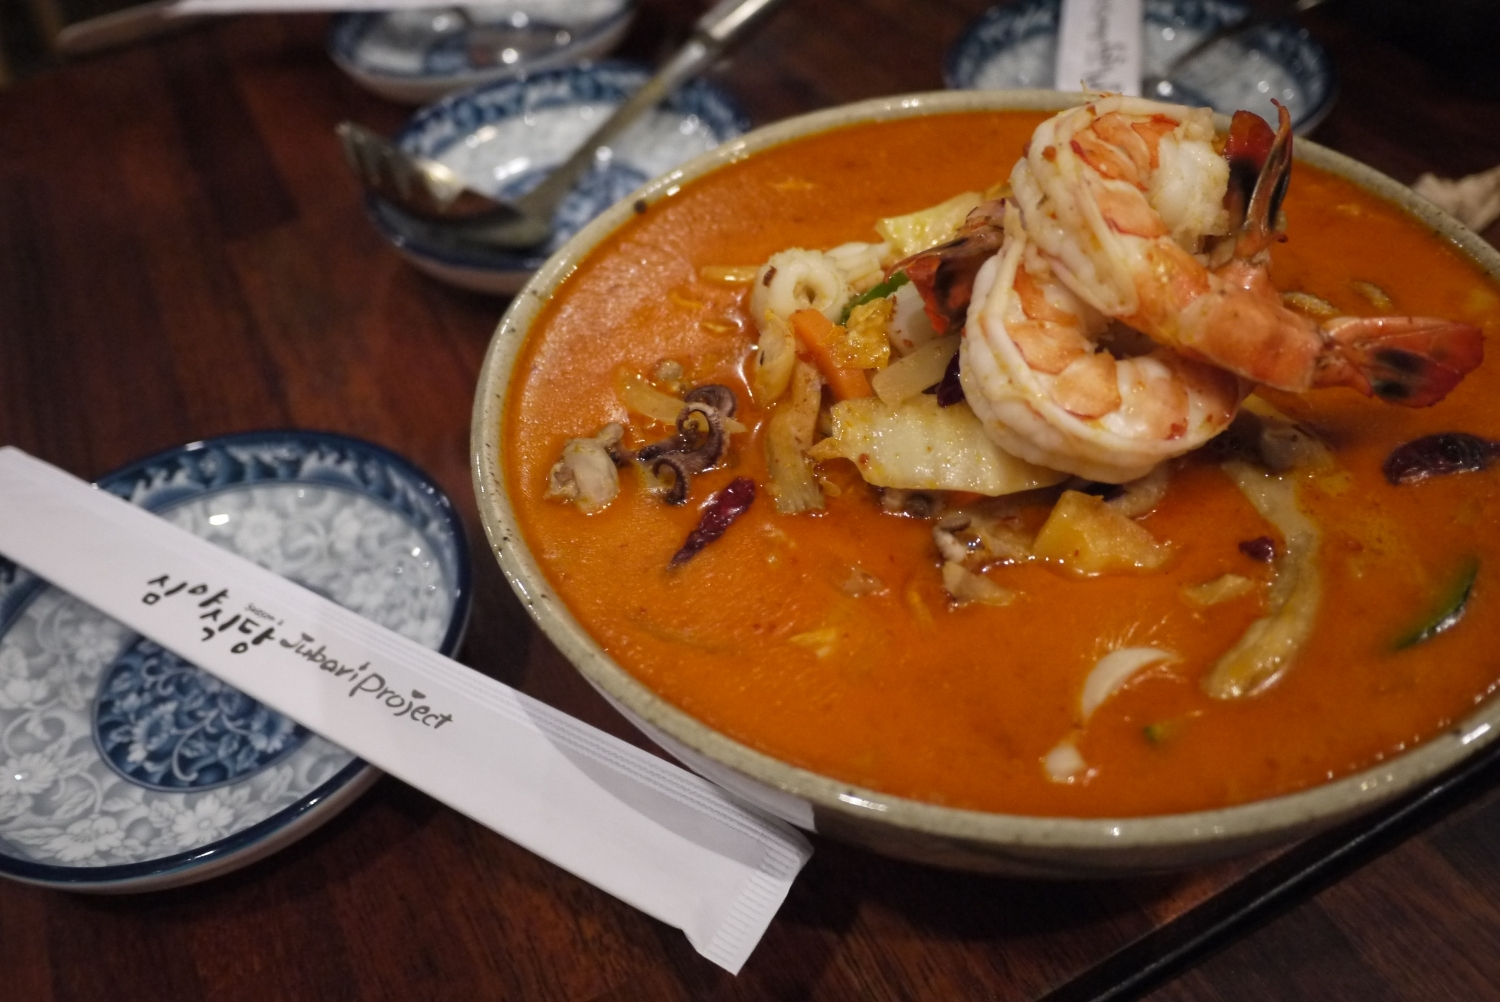 3am-5am ▶ What's in the Itaewon Soup? Find out at Simya Sikdang